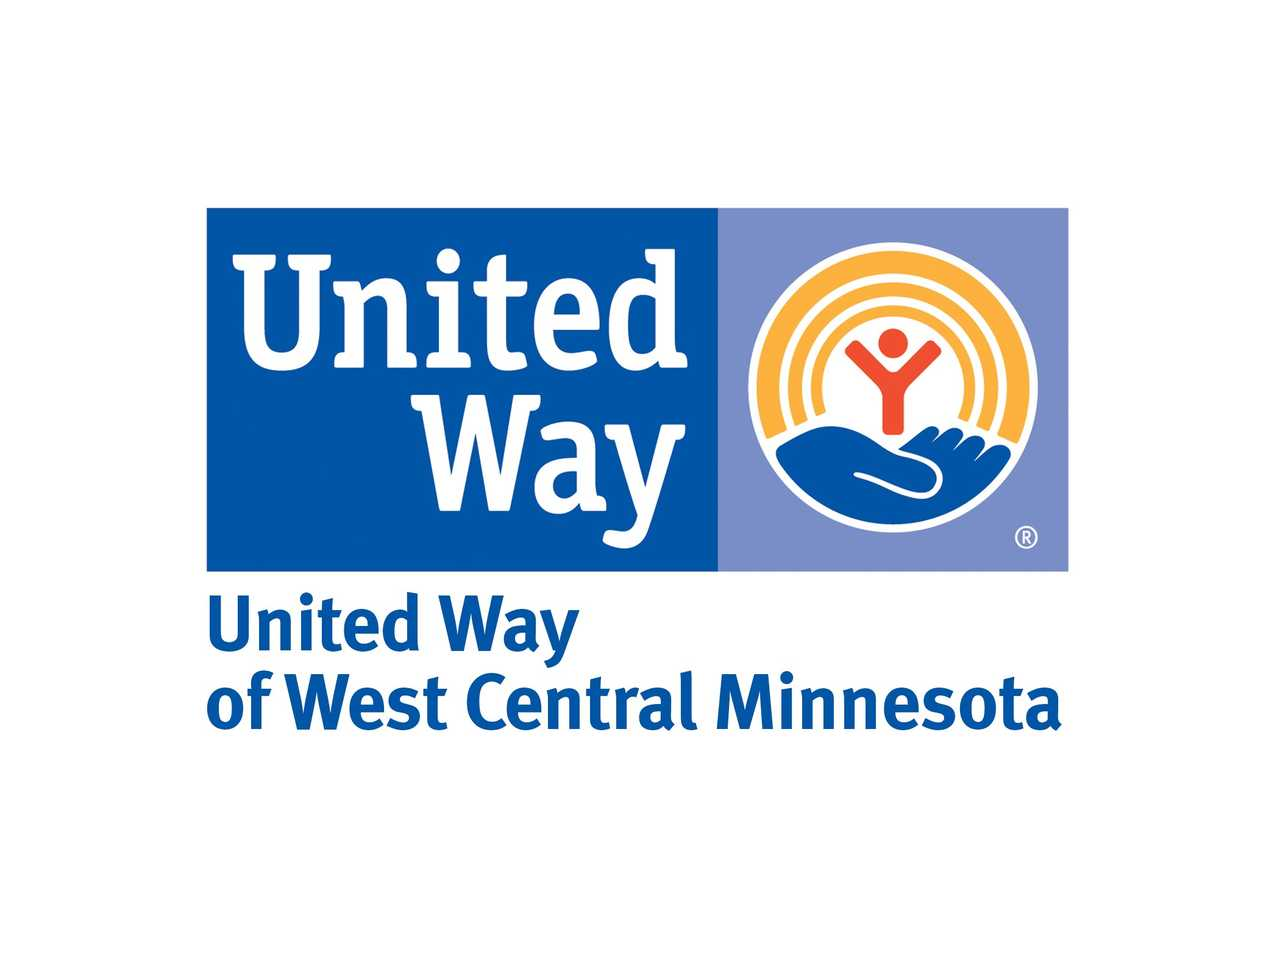 United Way of West Central Minnesota - Philanthropy - Non-Profit Organizations in Willmar MN